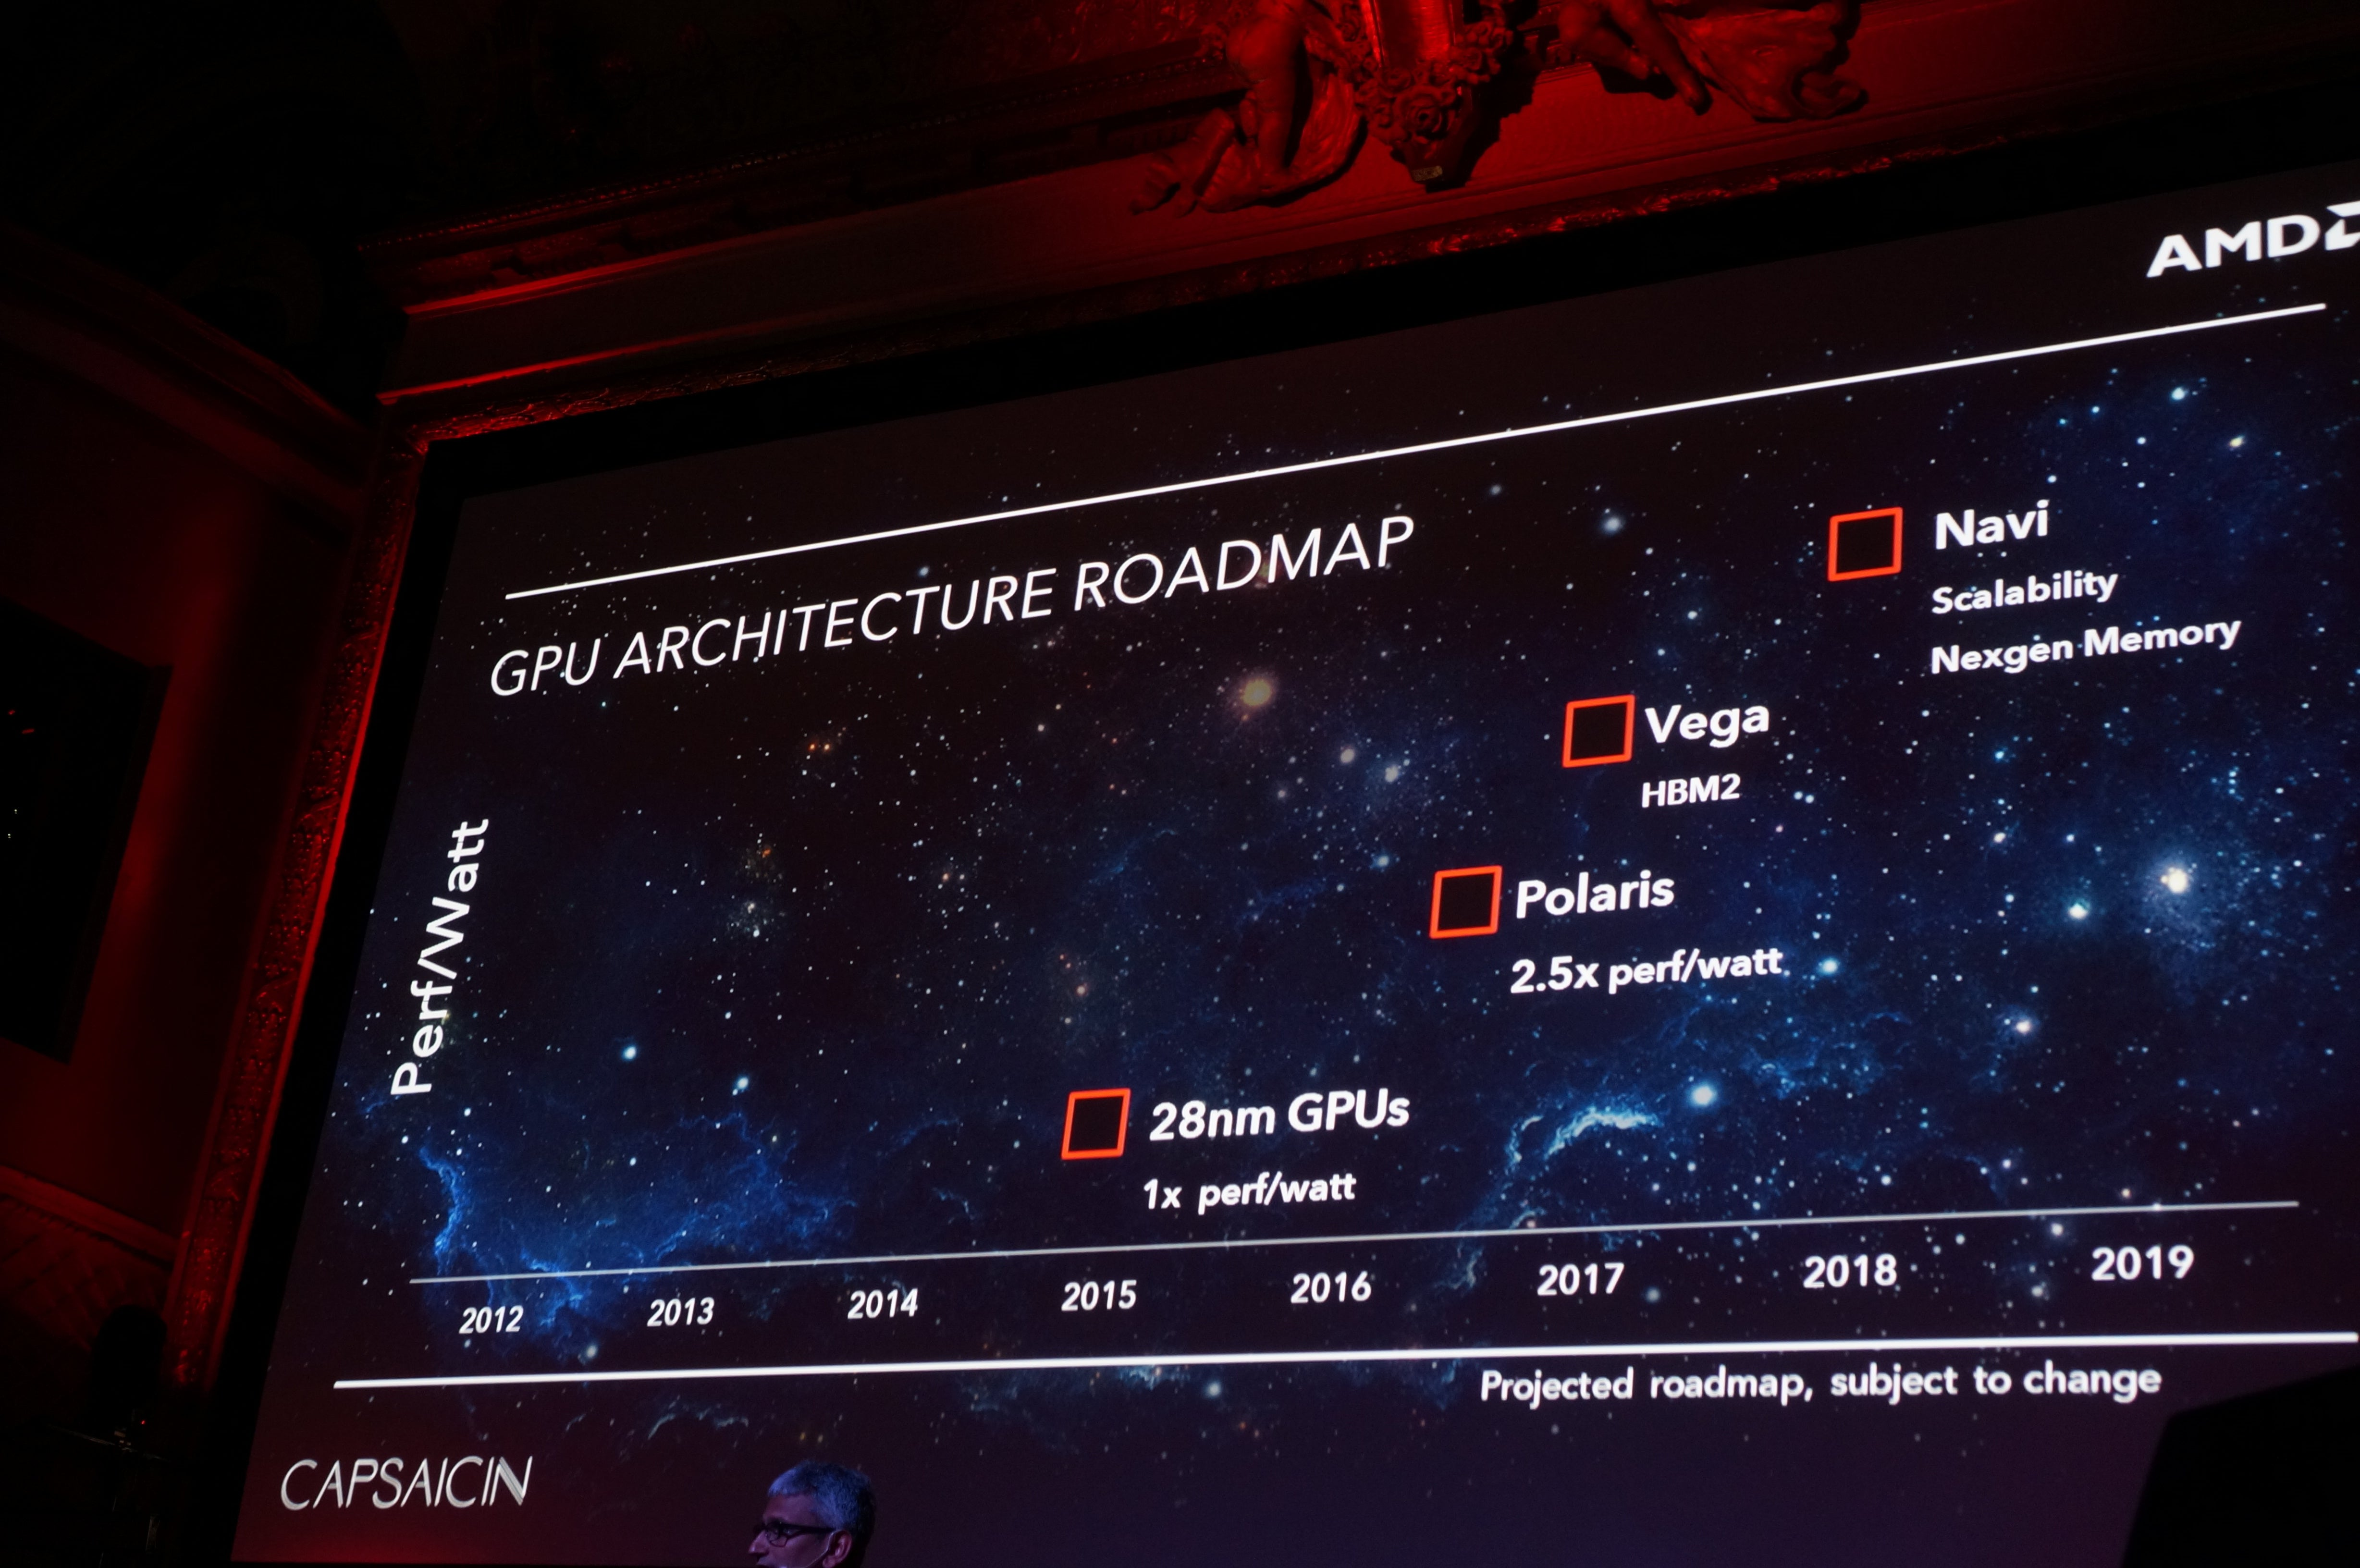 New AMD Radeon website counts down to Vega graphics card